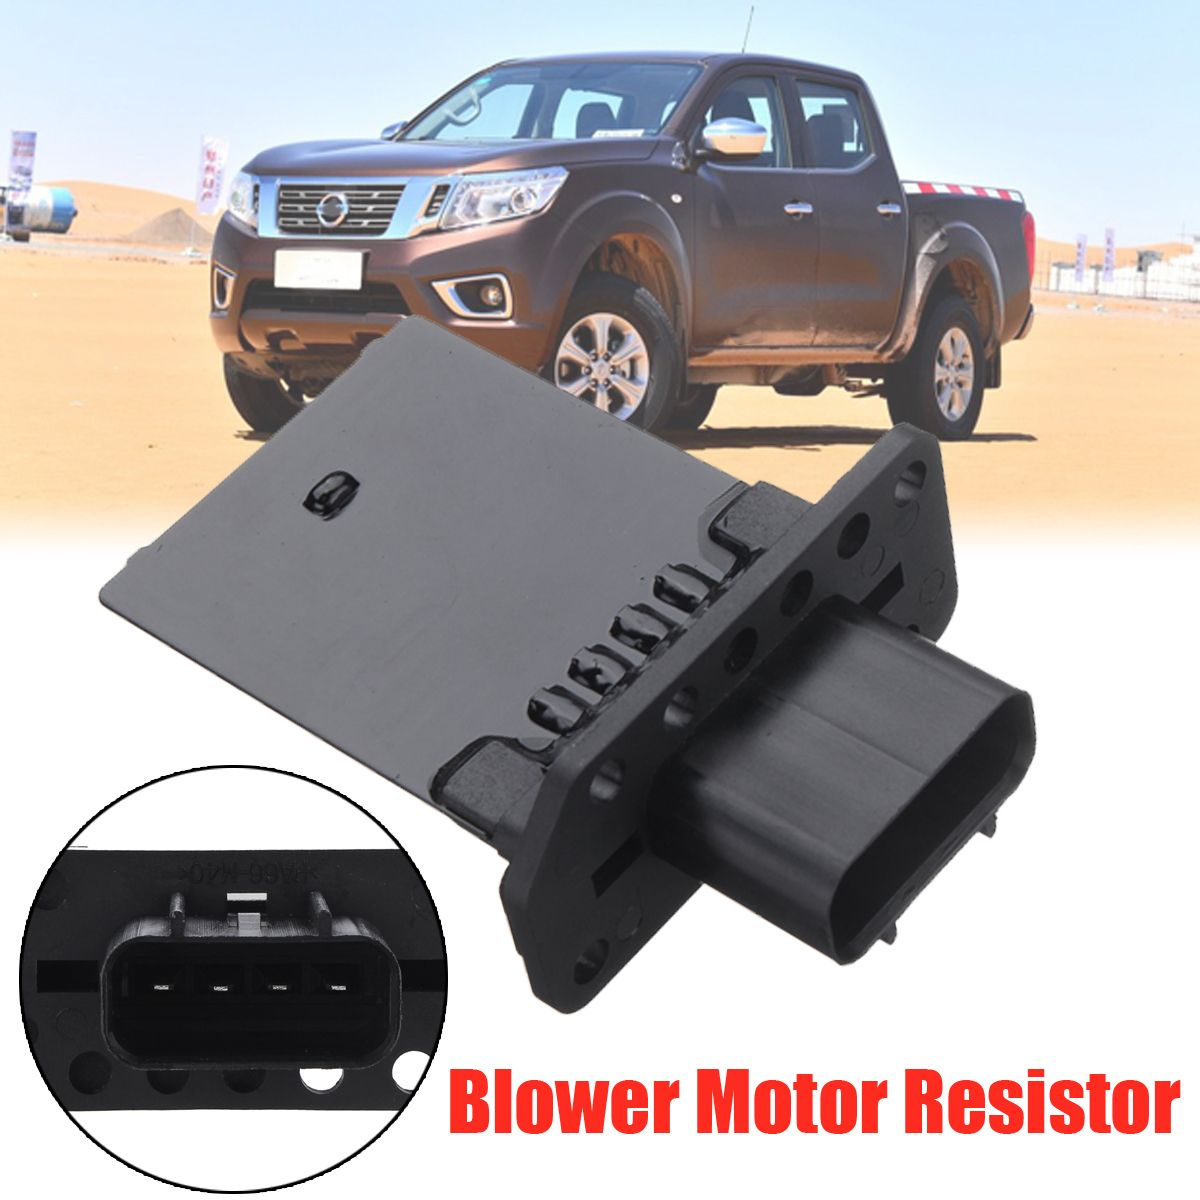 car blower motor heater fan resistor for nissan navara d40 pathfinder r51 05 13 sale shoppingdiscounts [ 1200 x 1200 Pixel ]